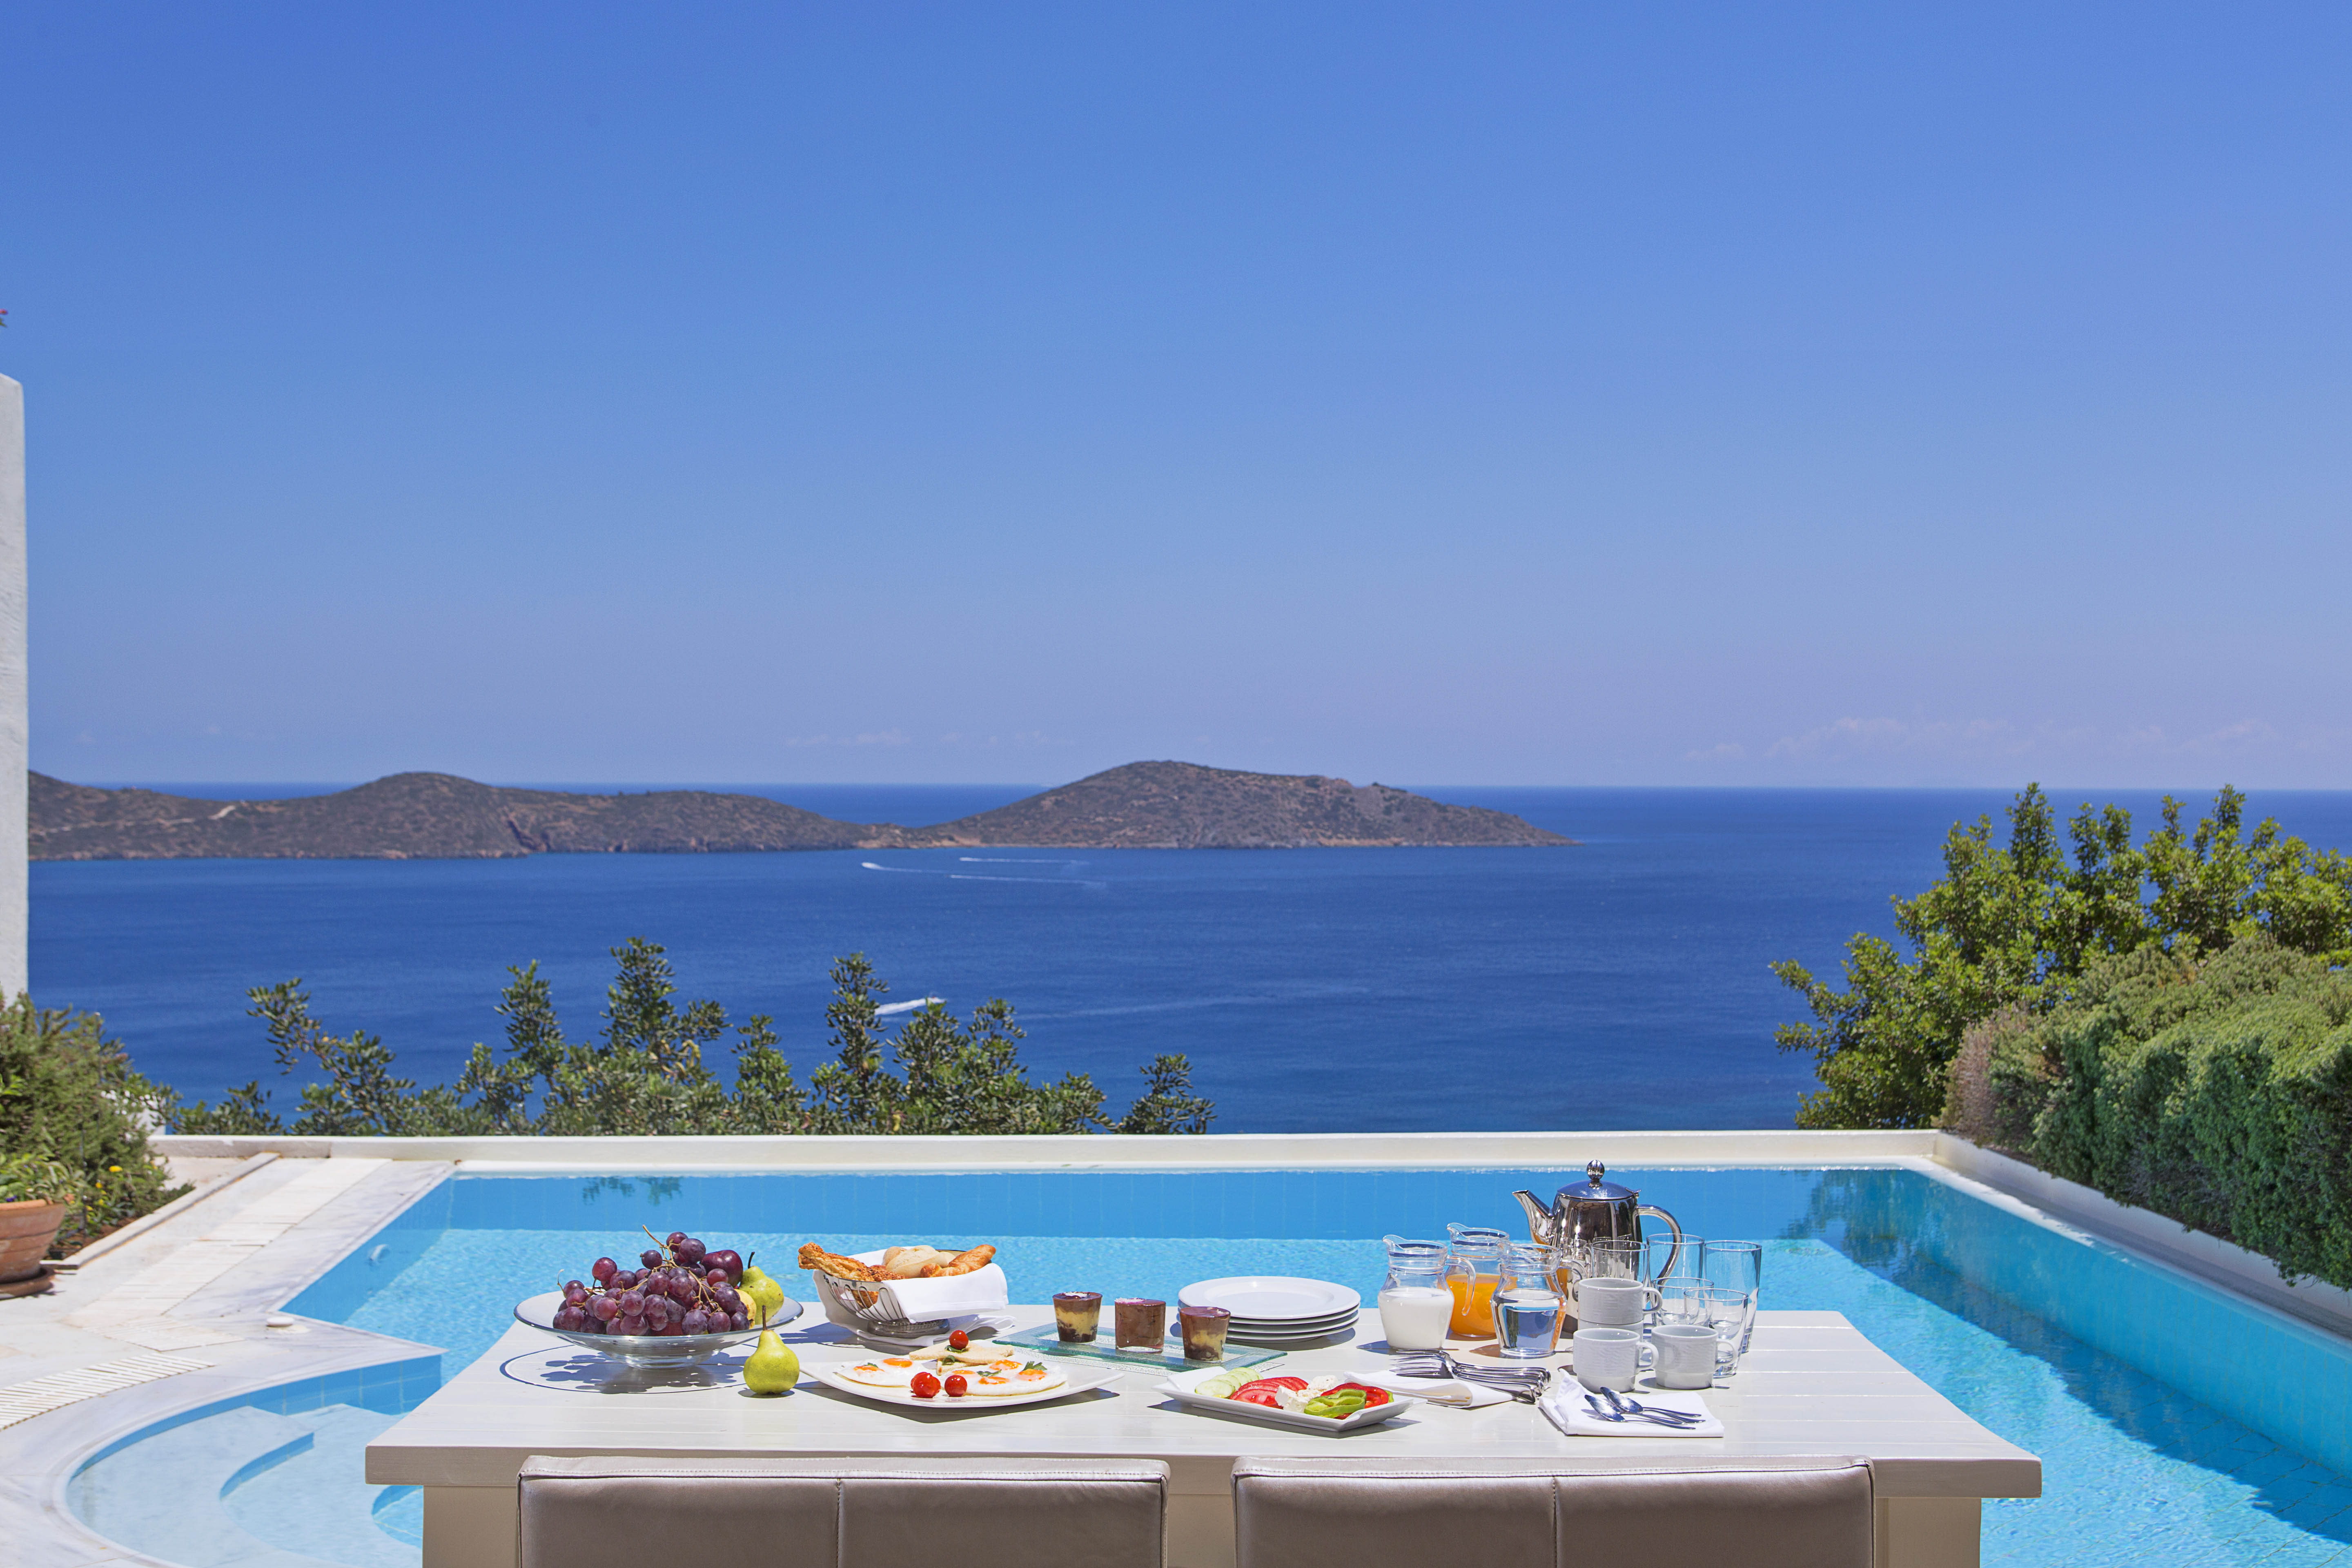 luxury villa rental, Greece, CREAGI 2005